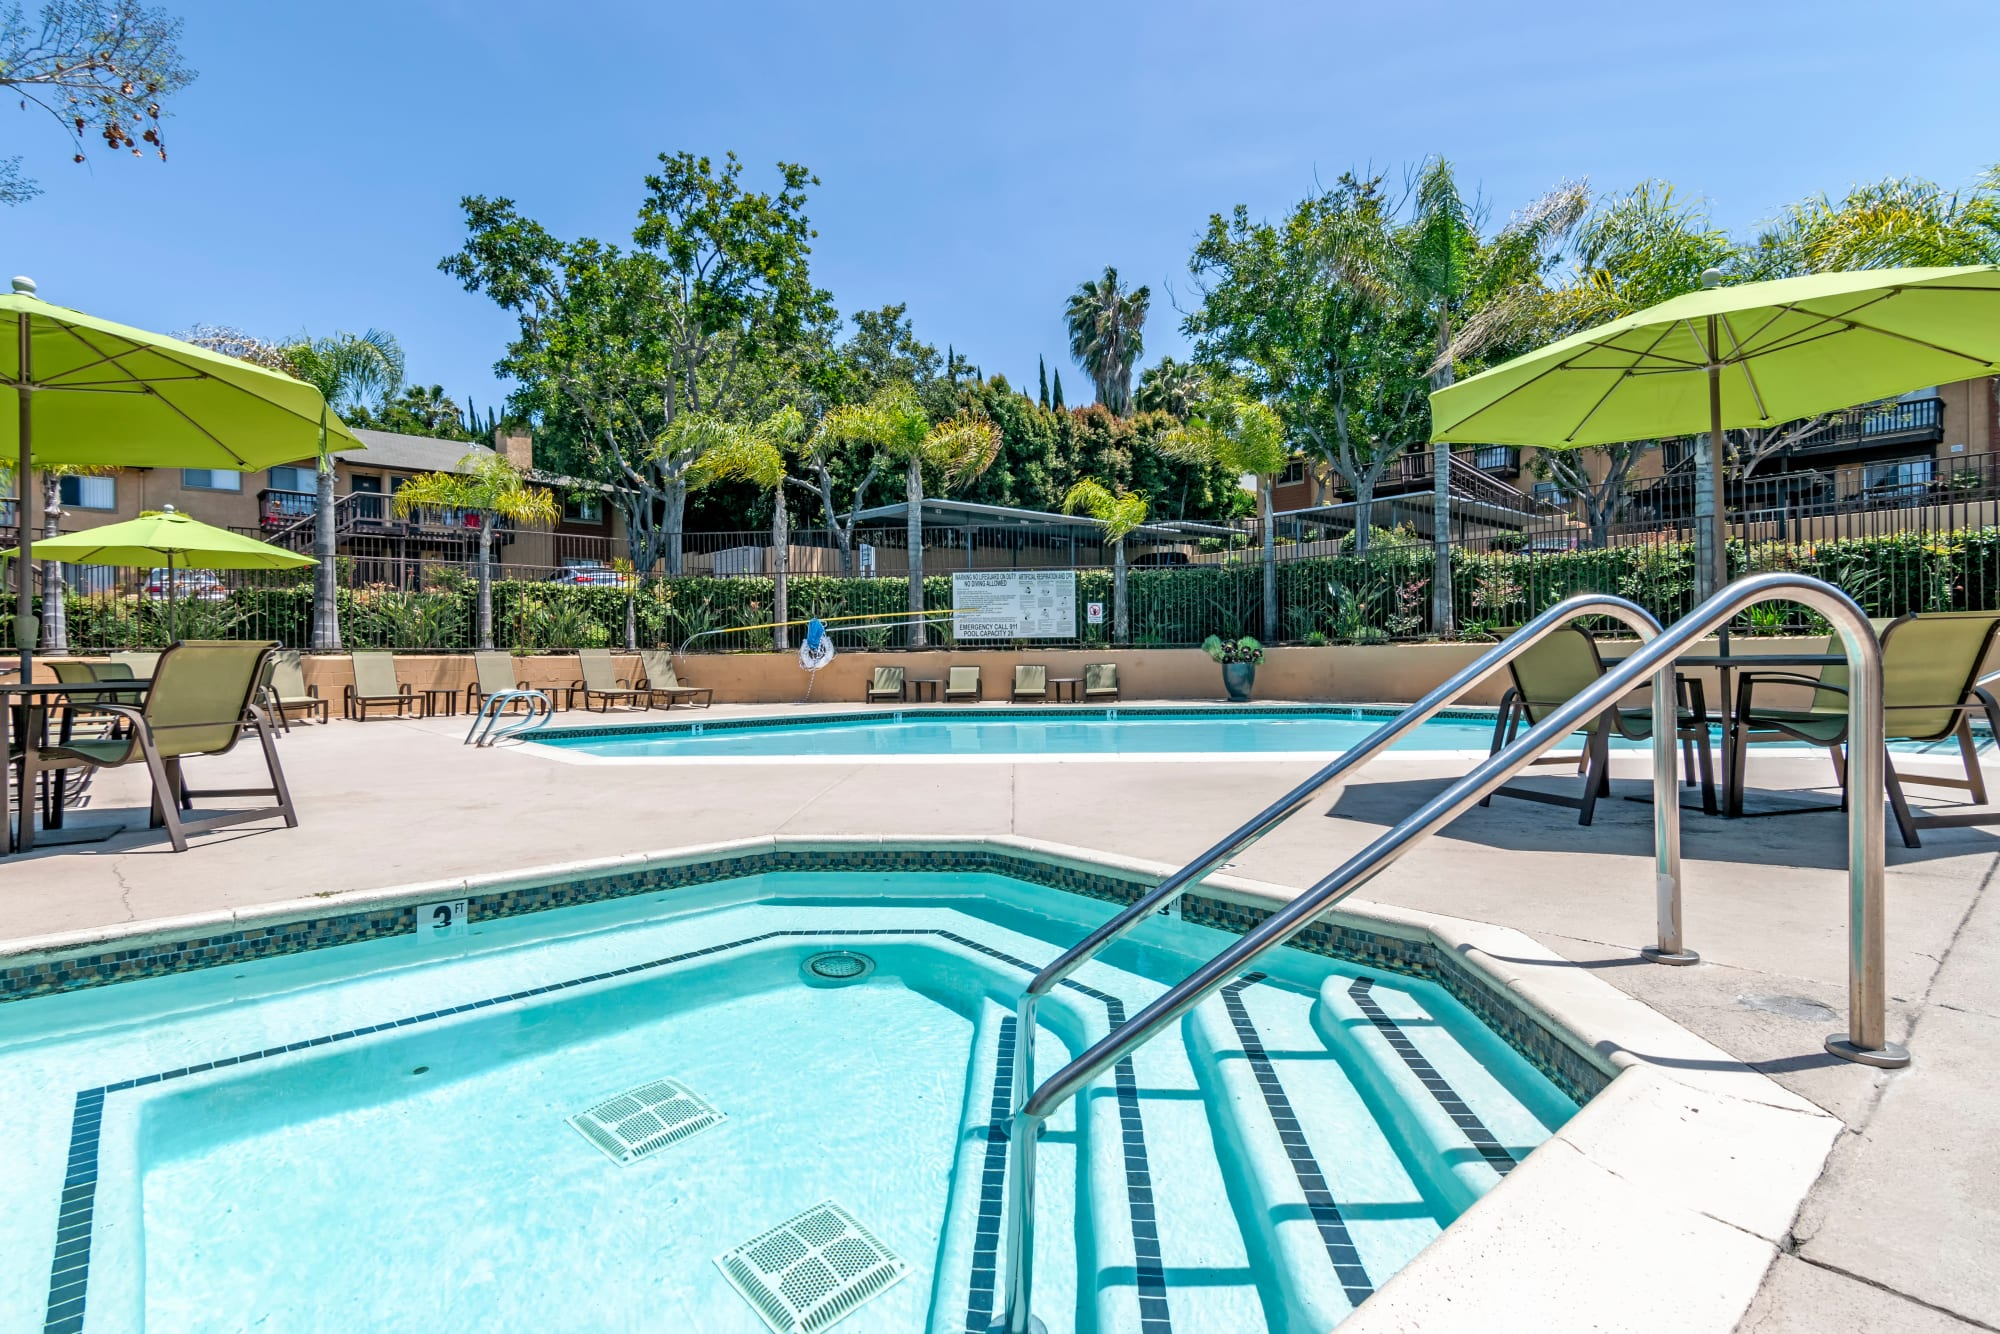 The spa, pool and poolside cabanas at Hillside Terrace Apartments in Lemon Grove, California